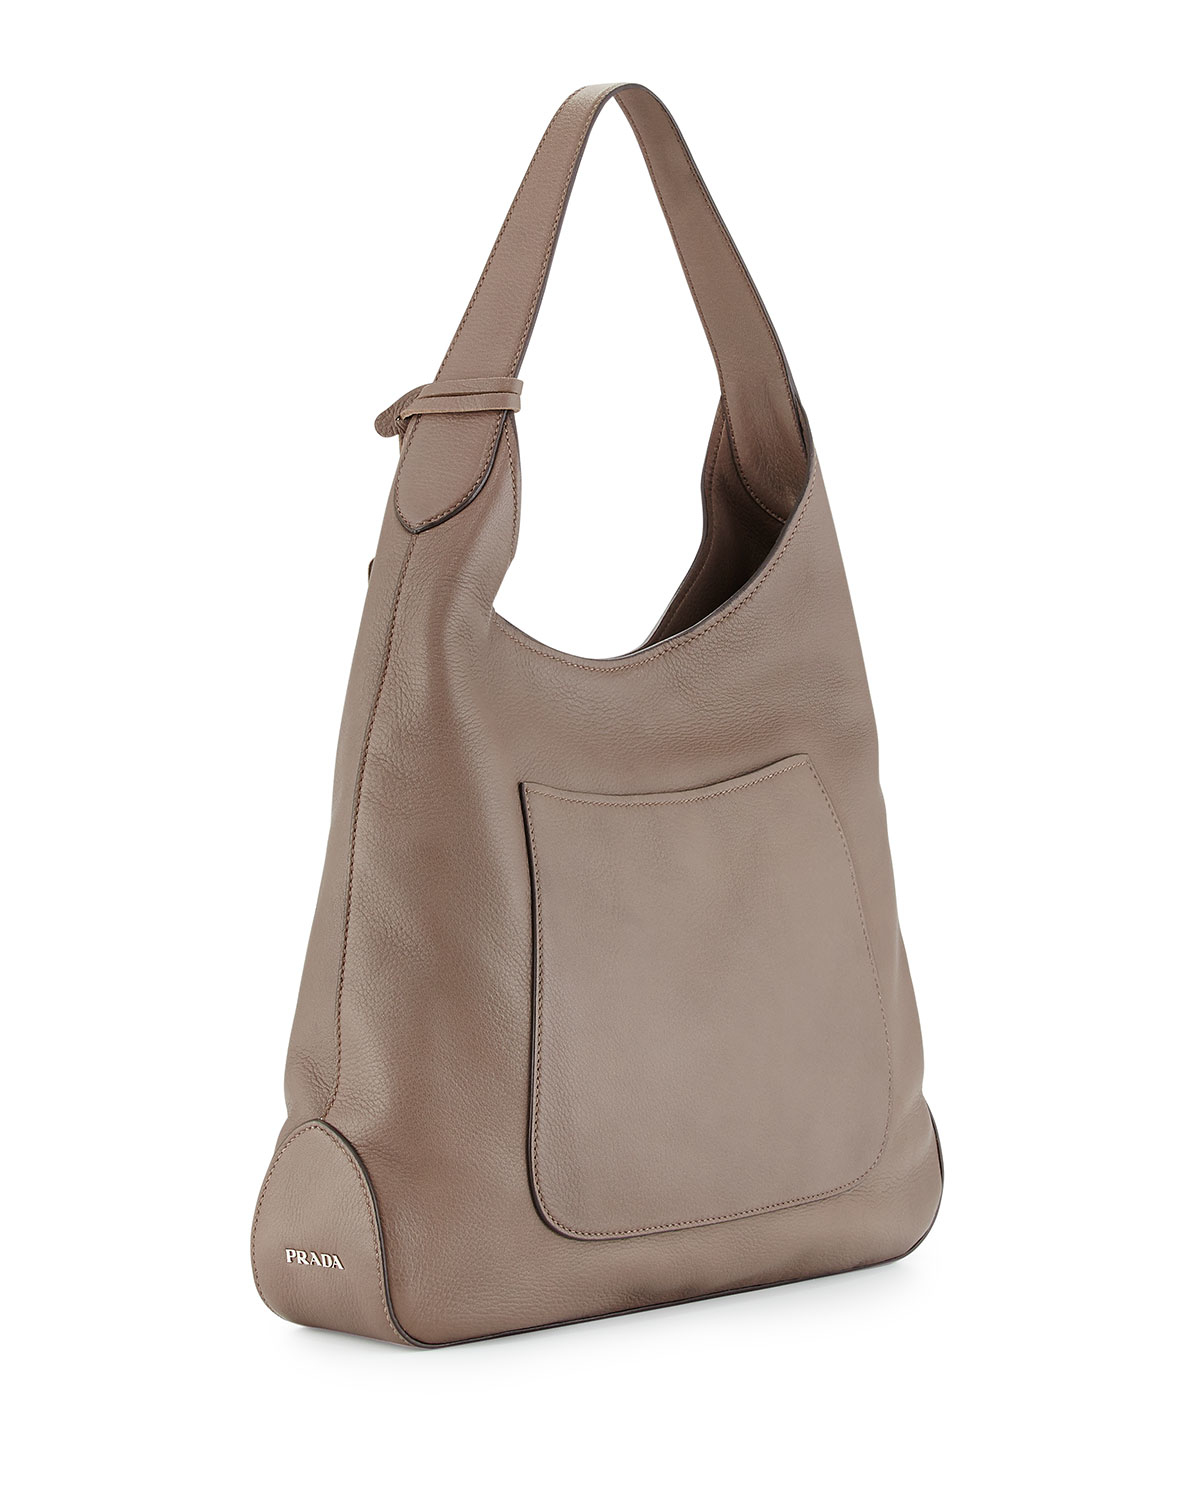 Prada Cervo Pocket Hobo Bag in Gray | Lyst